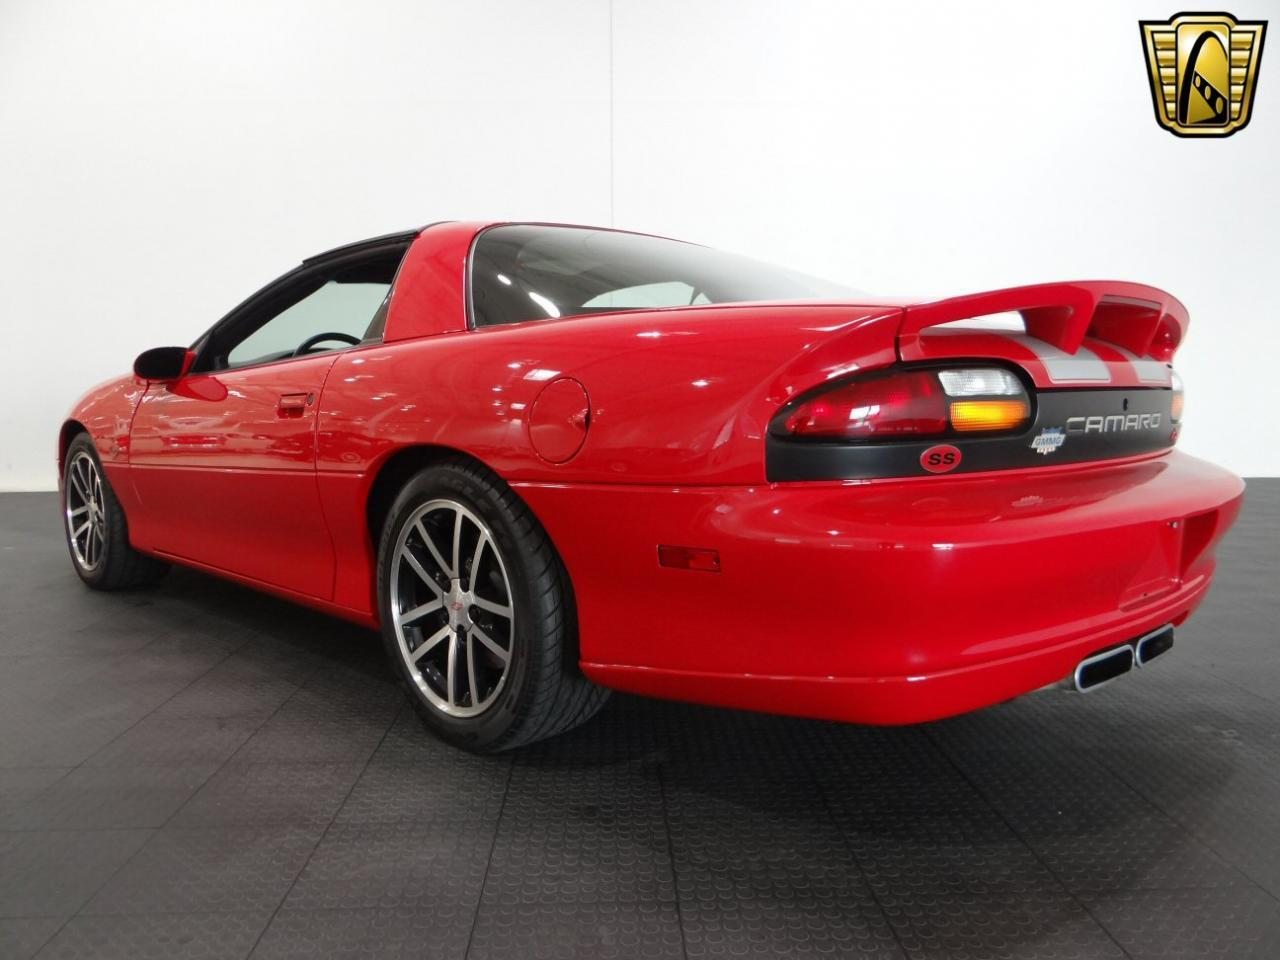 Large Picture of 2002 Camaro located in Illinois - $25,995.00 Offered by Gateway Classic Cars - Chicago - L44H